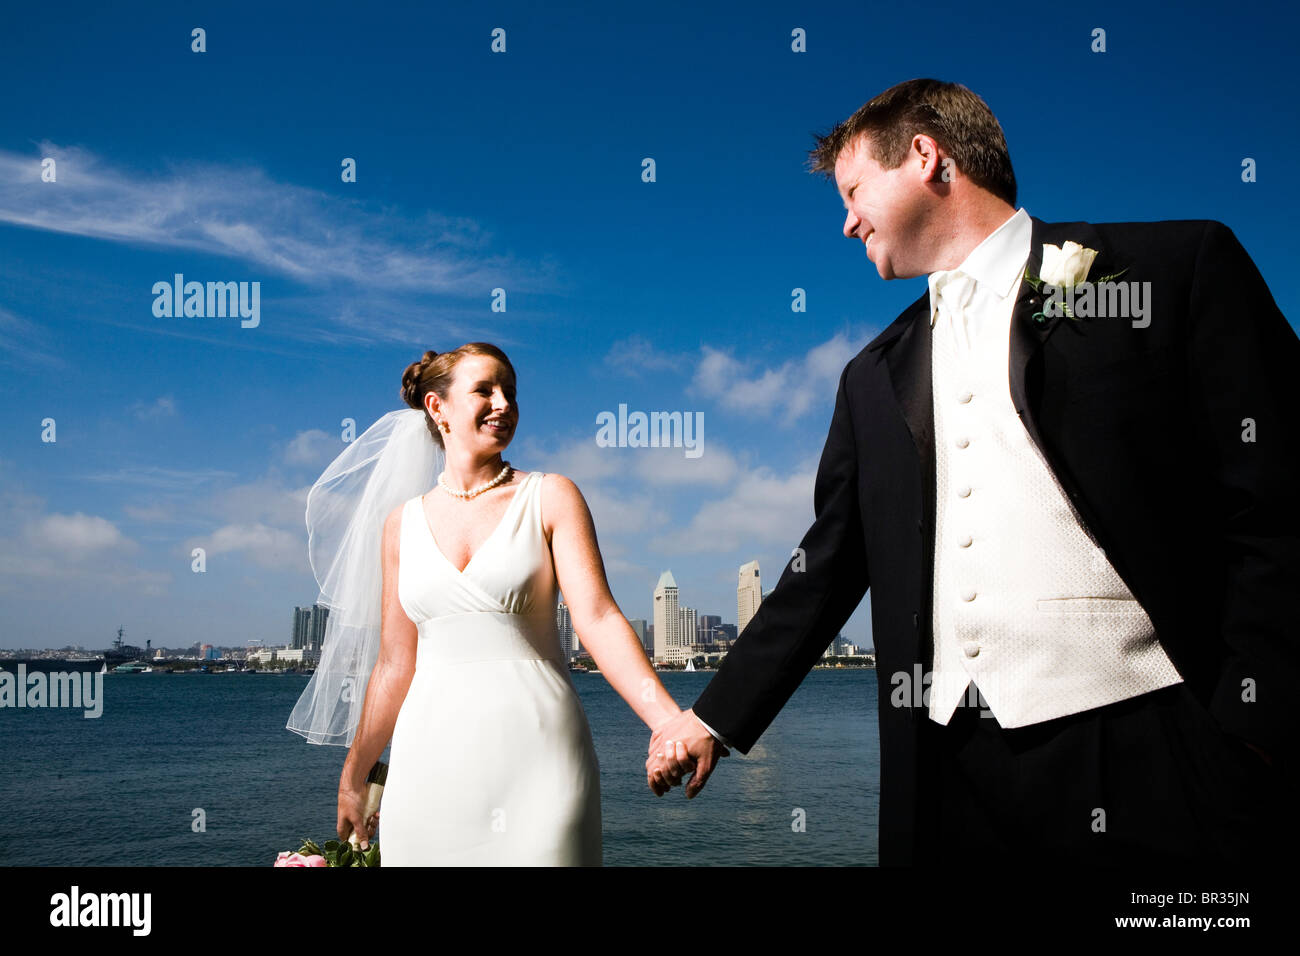 A bride and groom in Coronado, CA. - Stock Image